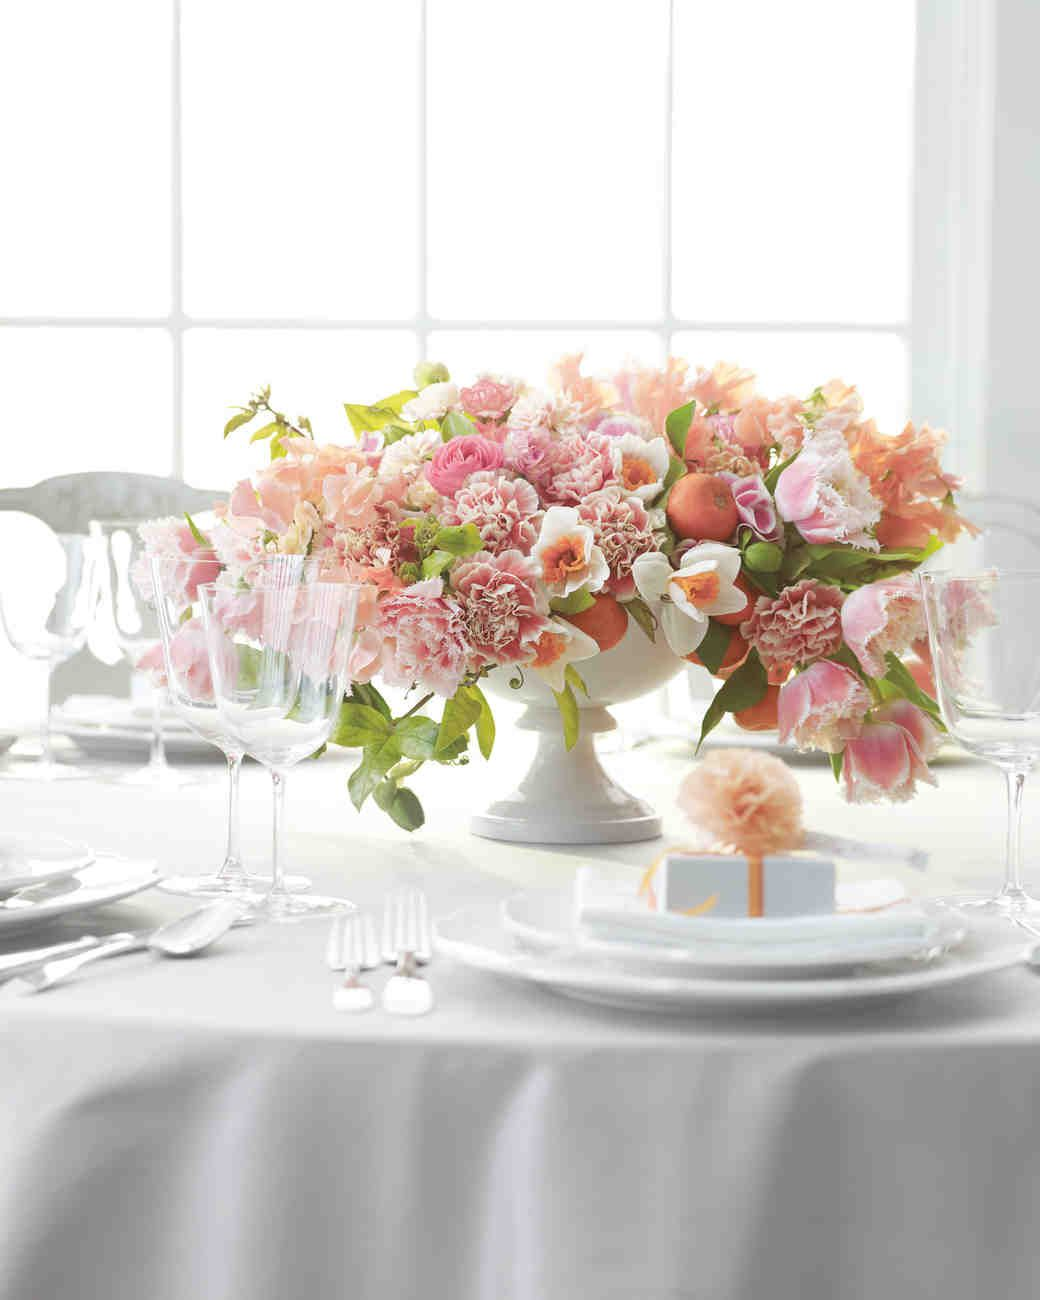 Wedding Flowers Cheap Ideas: 20 Elevated Ways To Use Carnations Throughout Your Entire